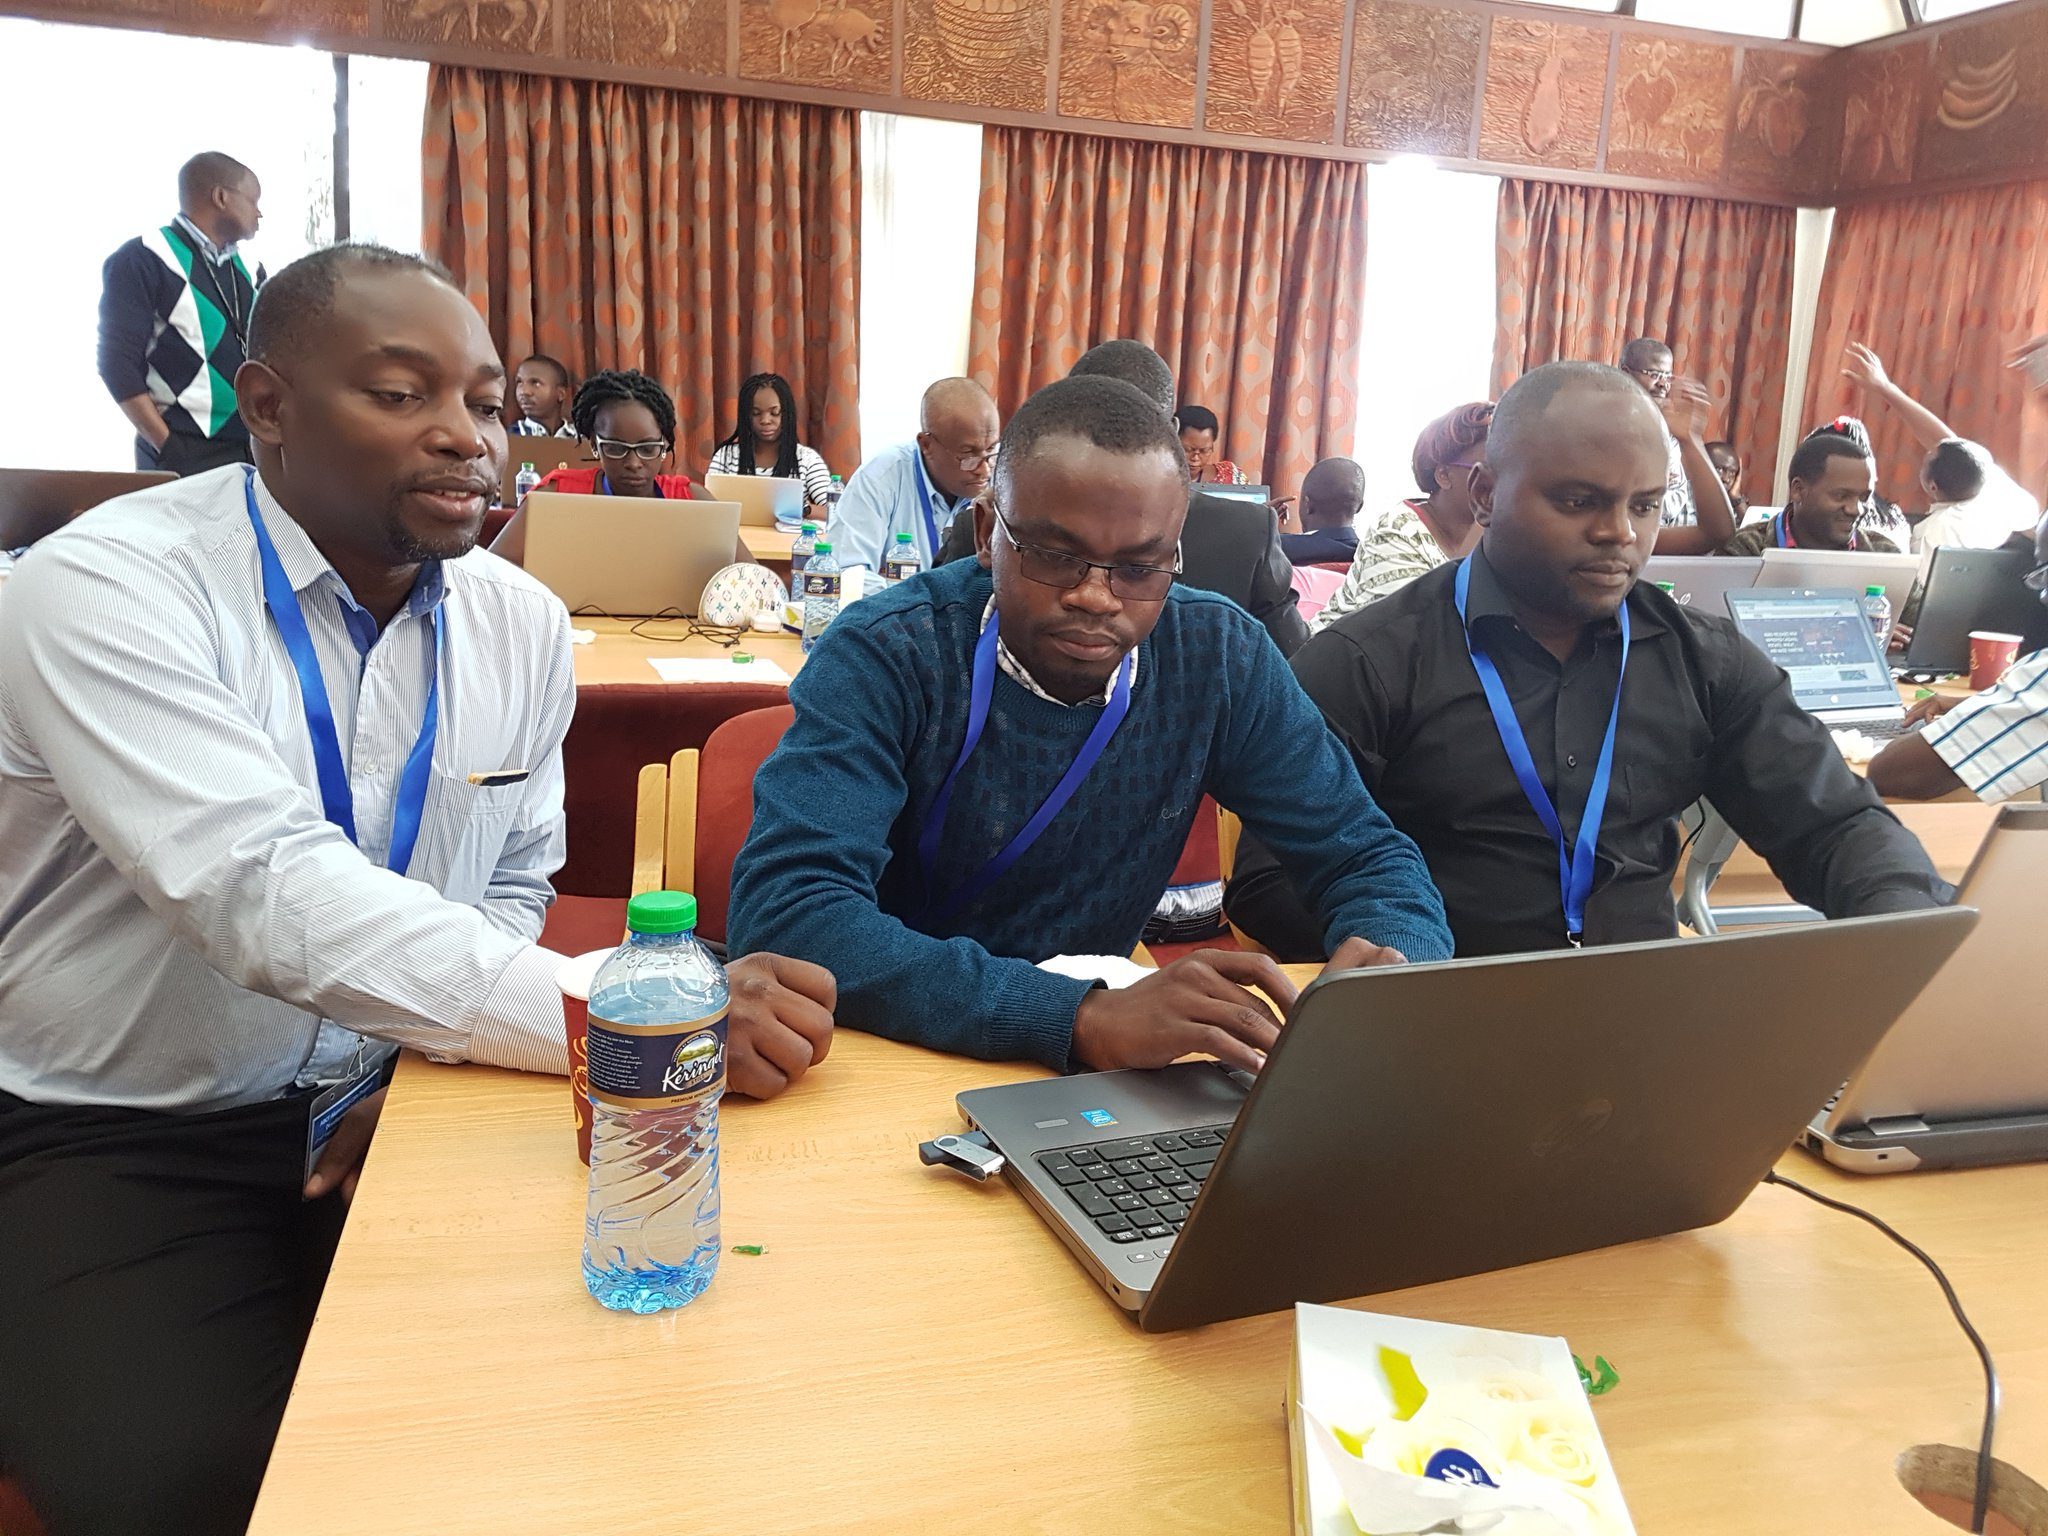 (L-R) Dr. John Walakira attended a top meeting on aquaculture in Nairobi recently. (PHOTO/Courtesy)